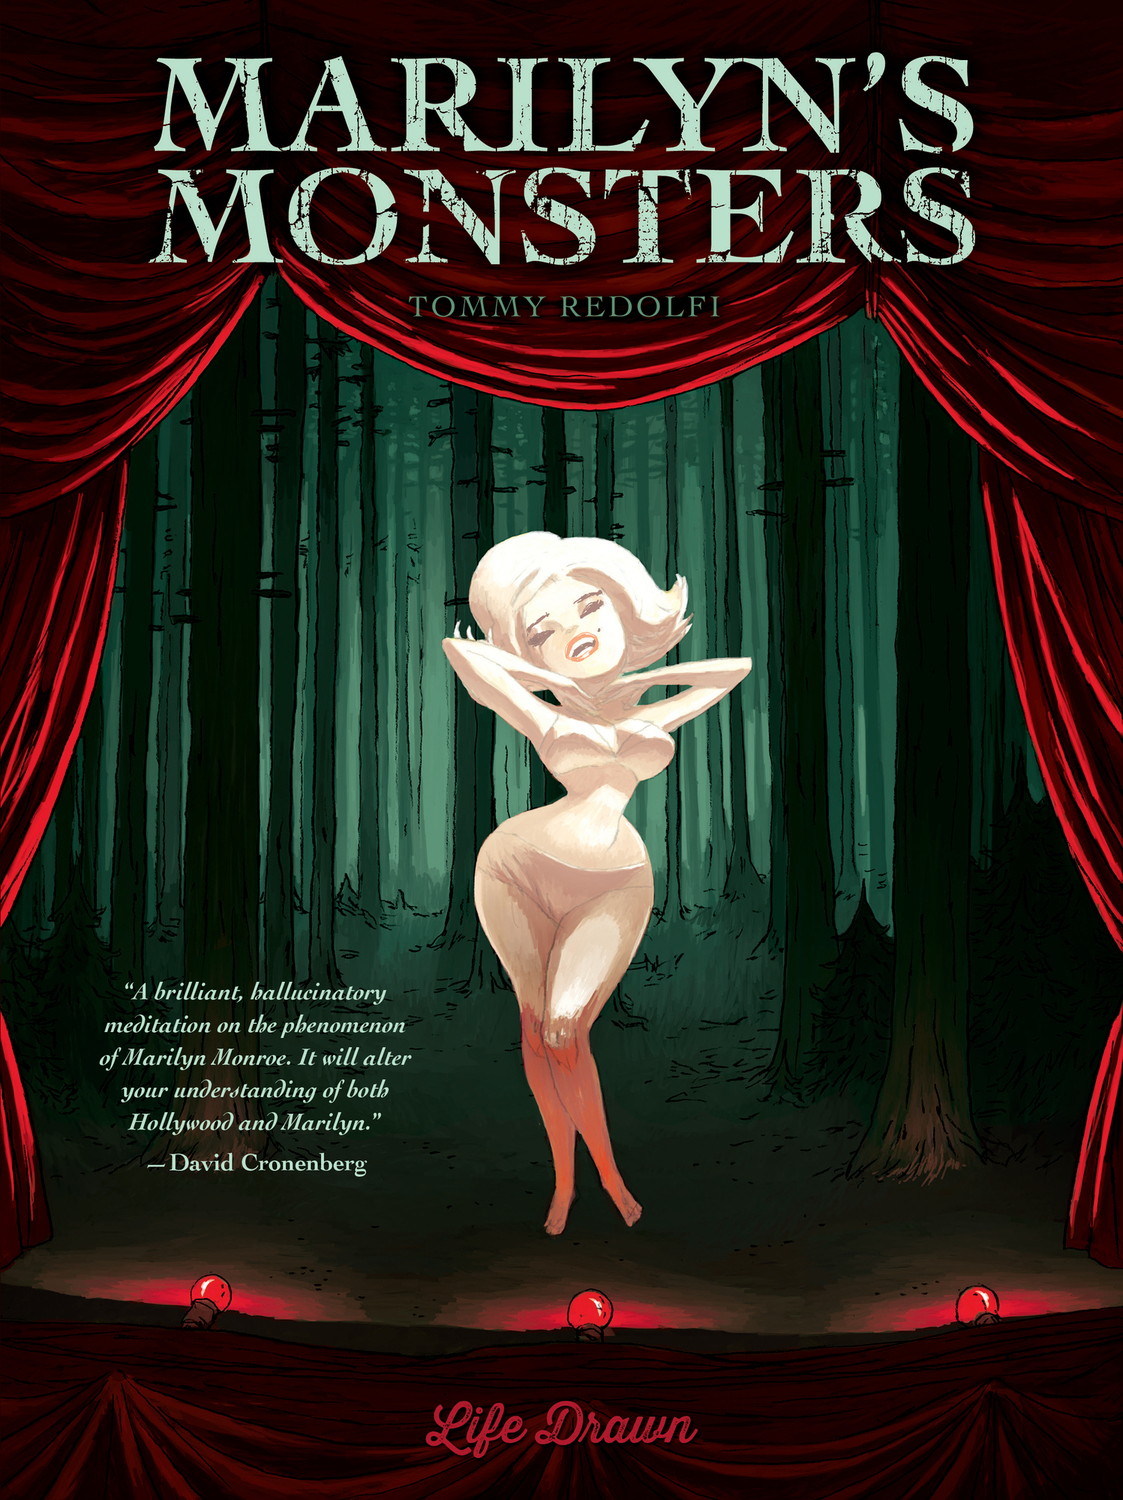 Marilyn's Monsters - Softcover Trade